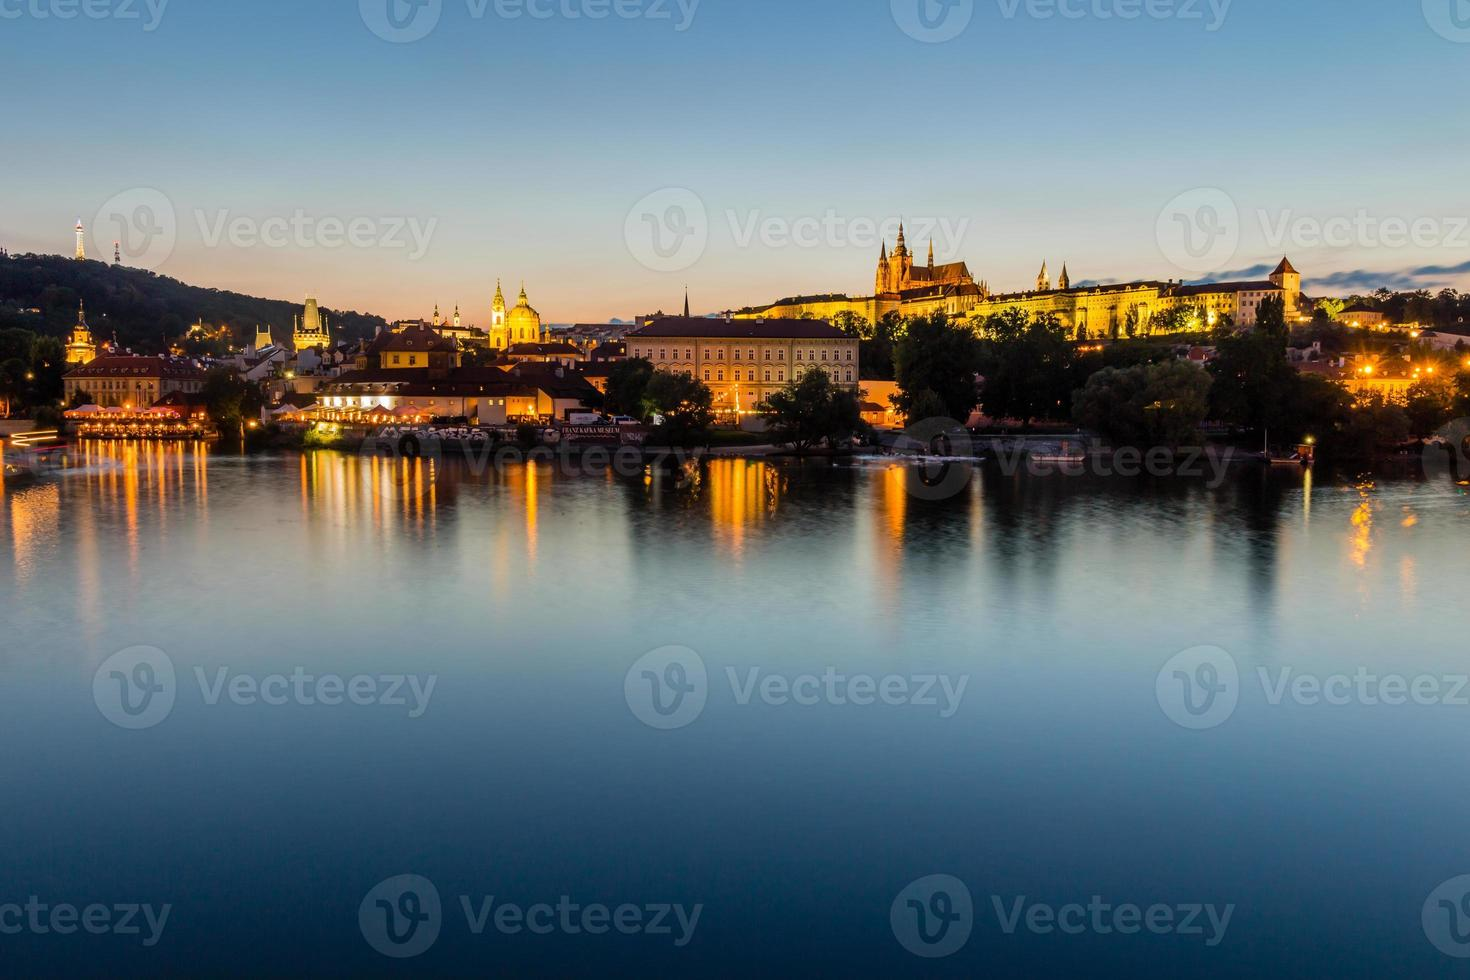 The historic center of Prague, ancient architecture at night photo